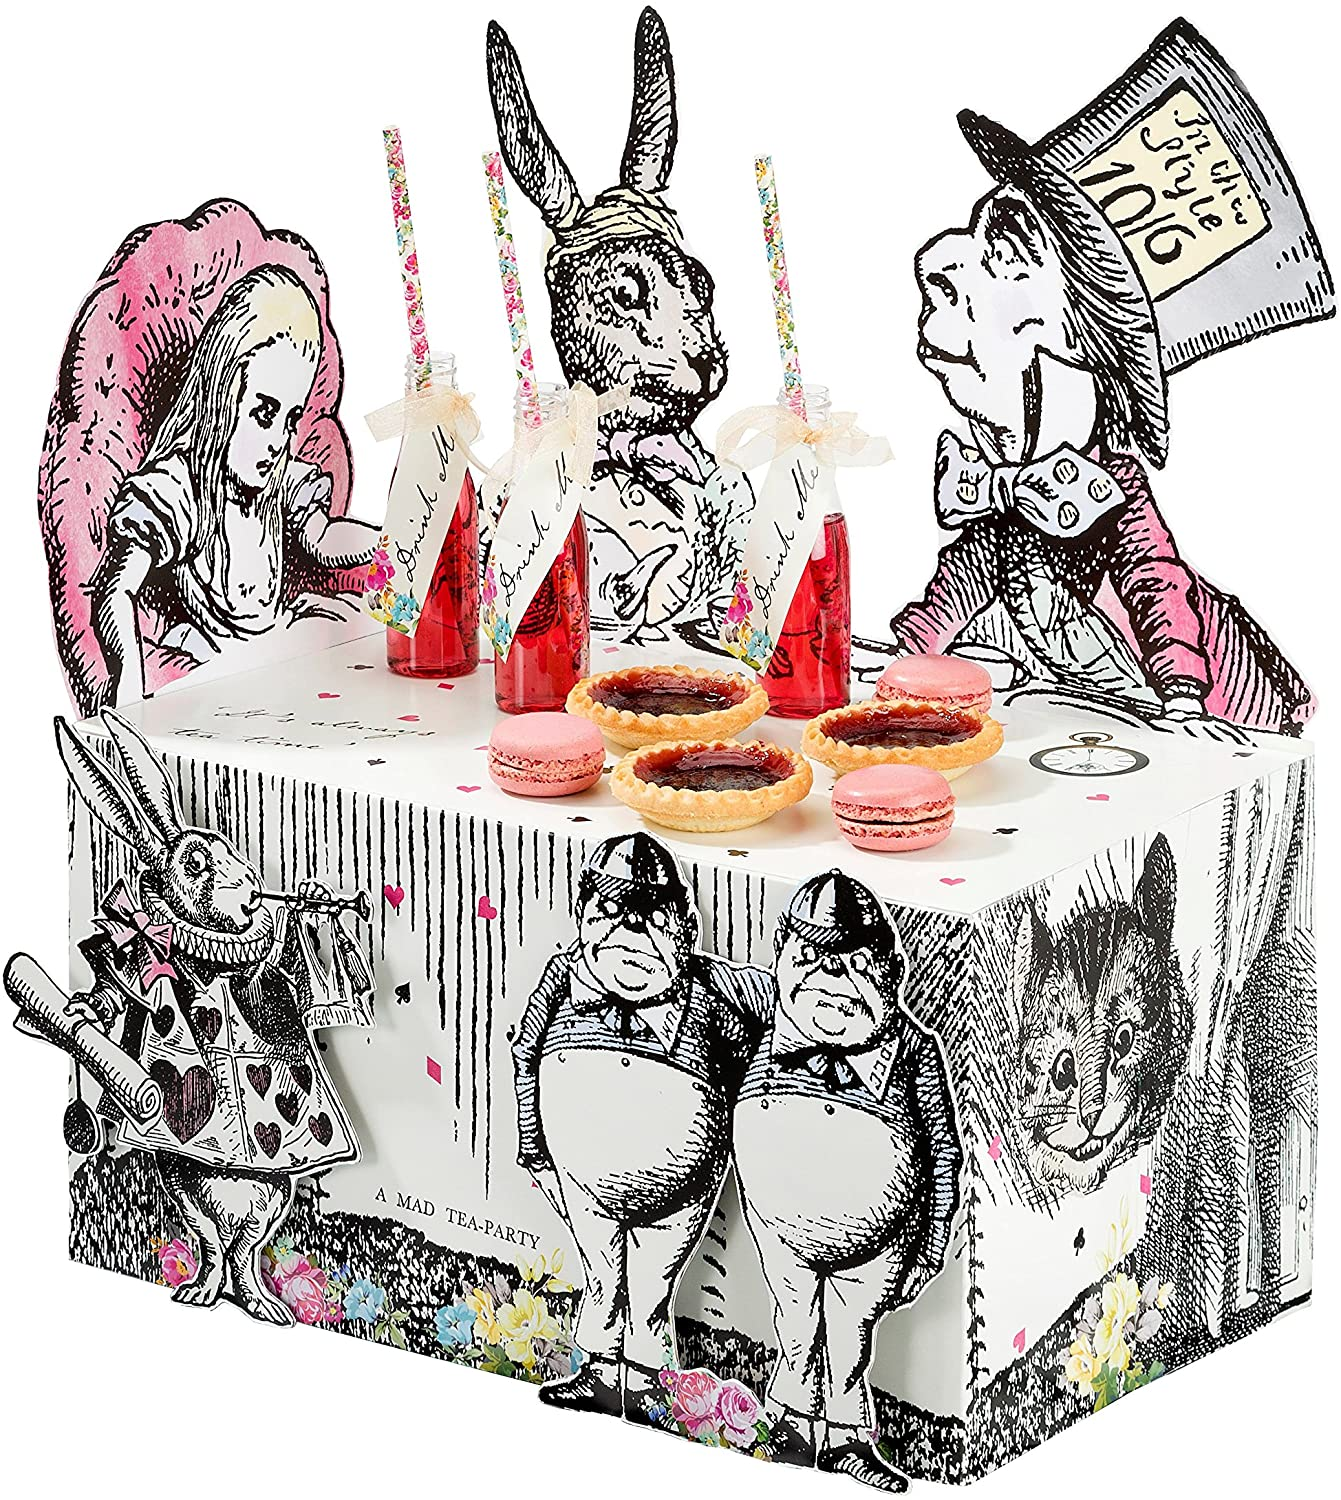 Talking Tables Alice In Wonderland Party Supplies | Table Centrepiece | Great For Mad Hatter Tea Party, Birthday Party And Baby Shower | Paper